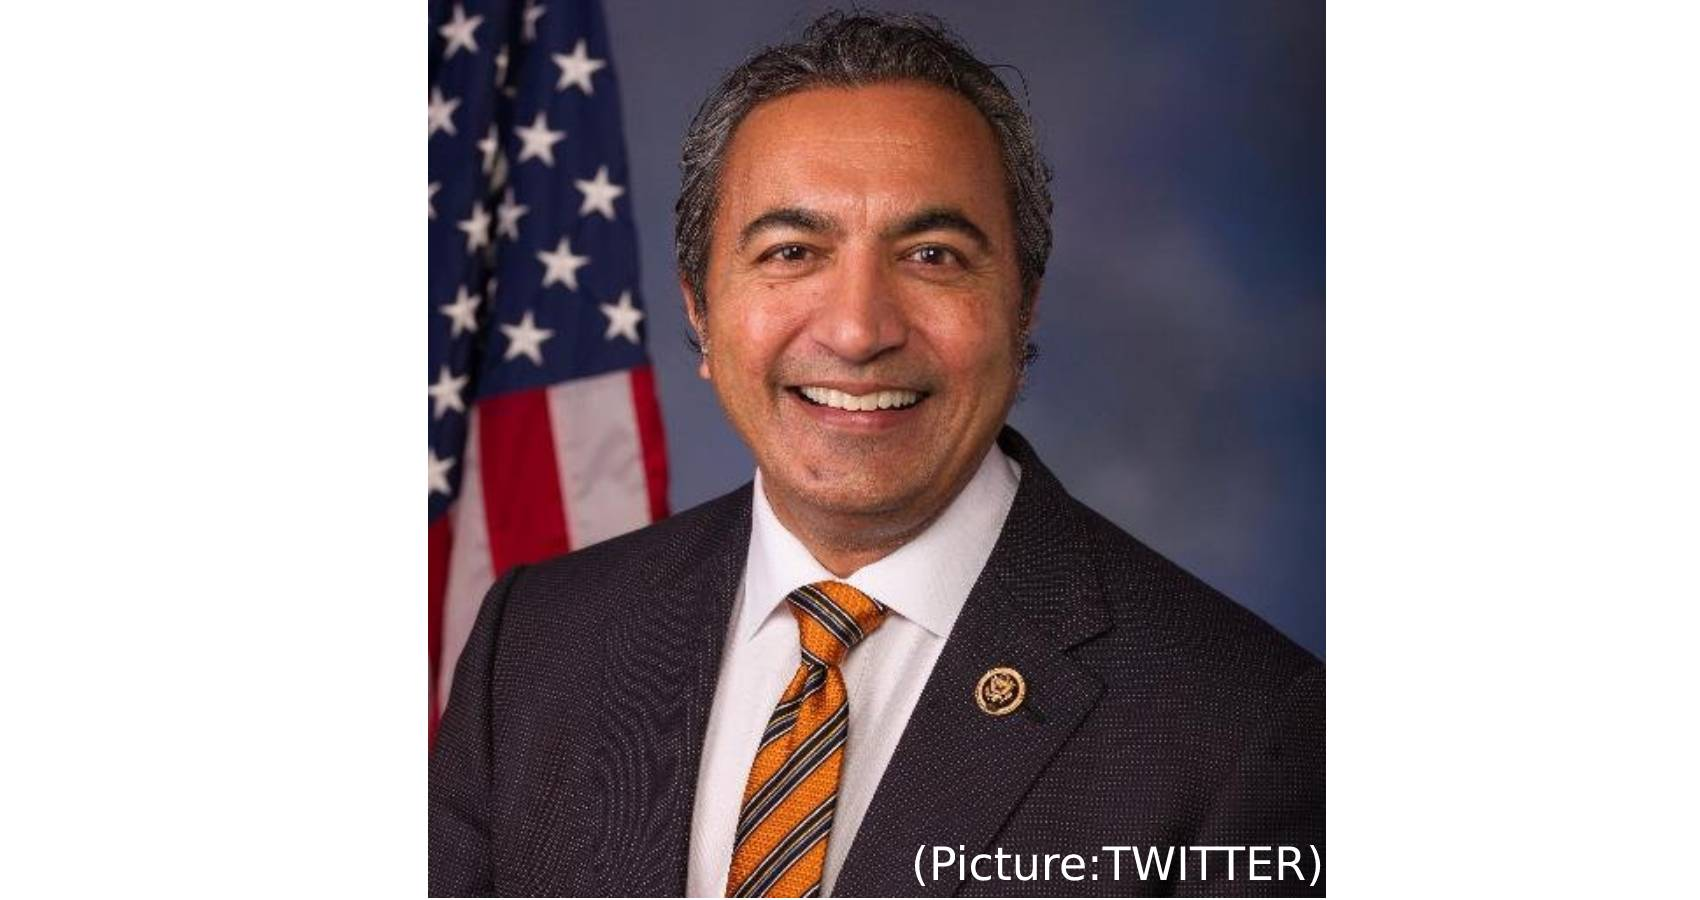 Rep. Ami Bera Urges Biden To Protect 'Documented Dreamers'